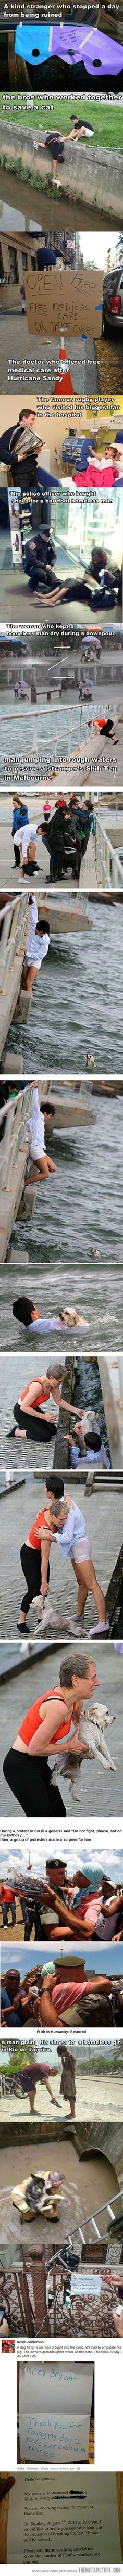 Moments that restored my faith in humanity